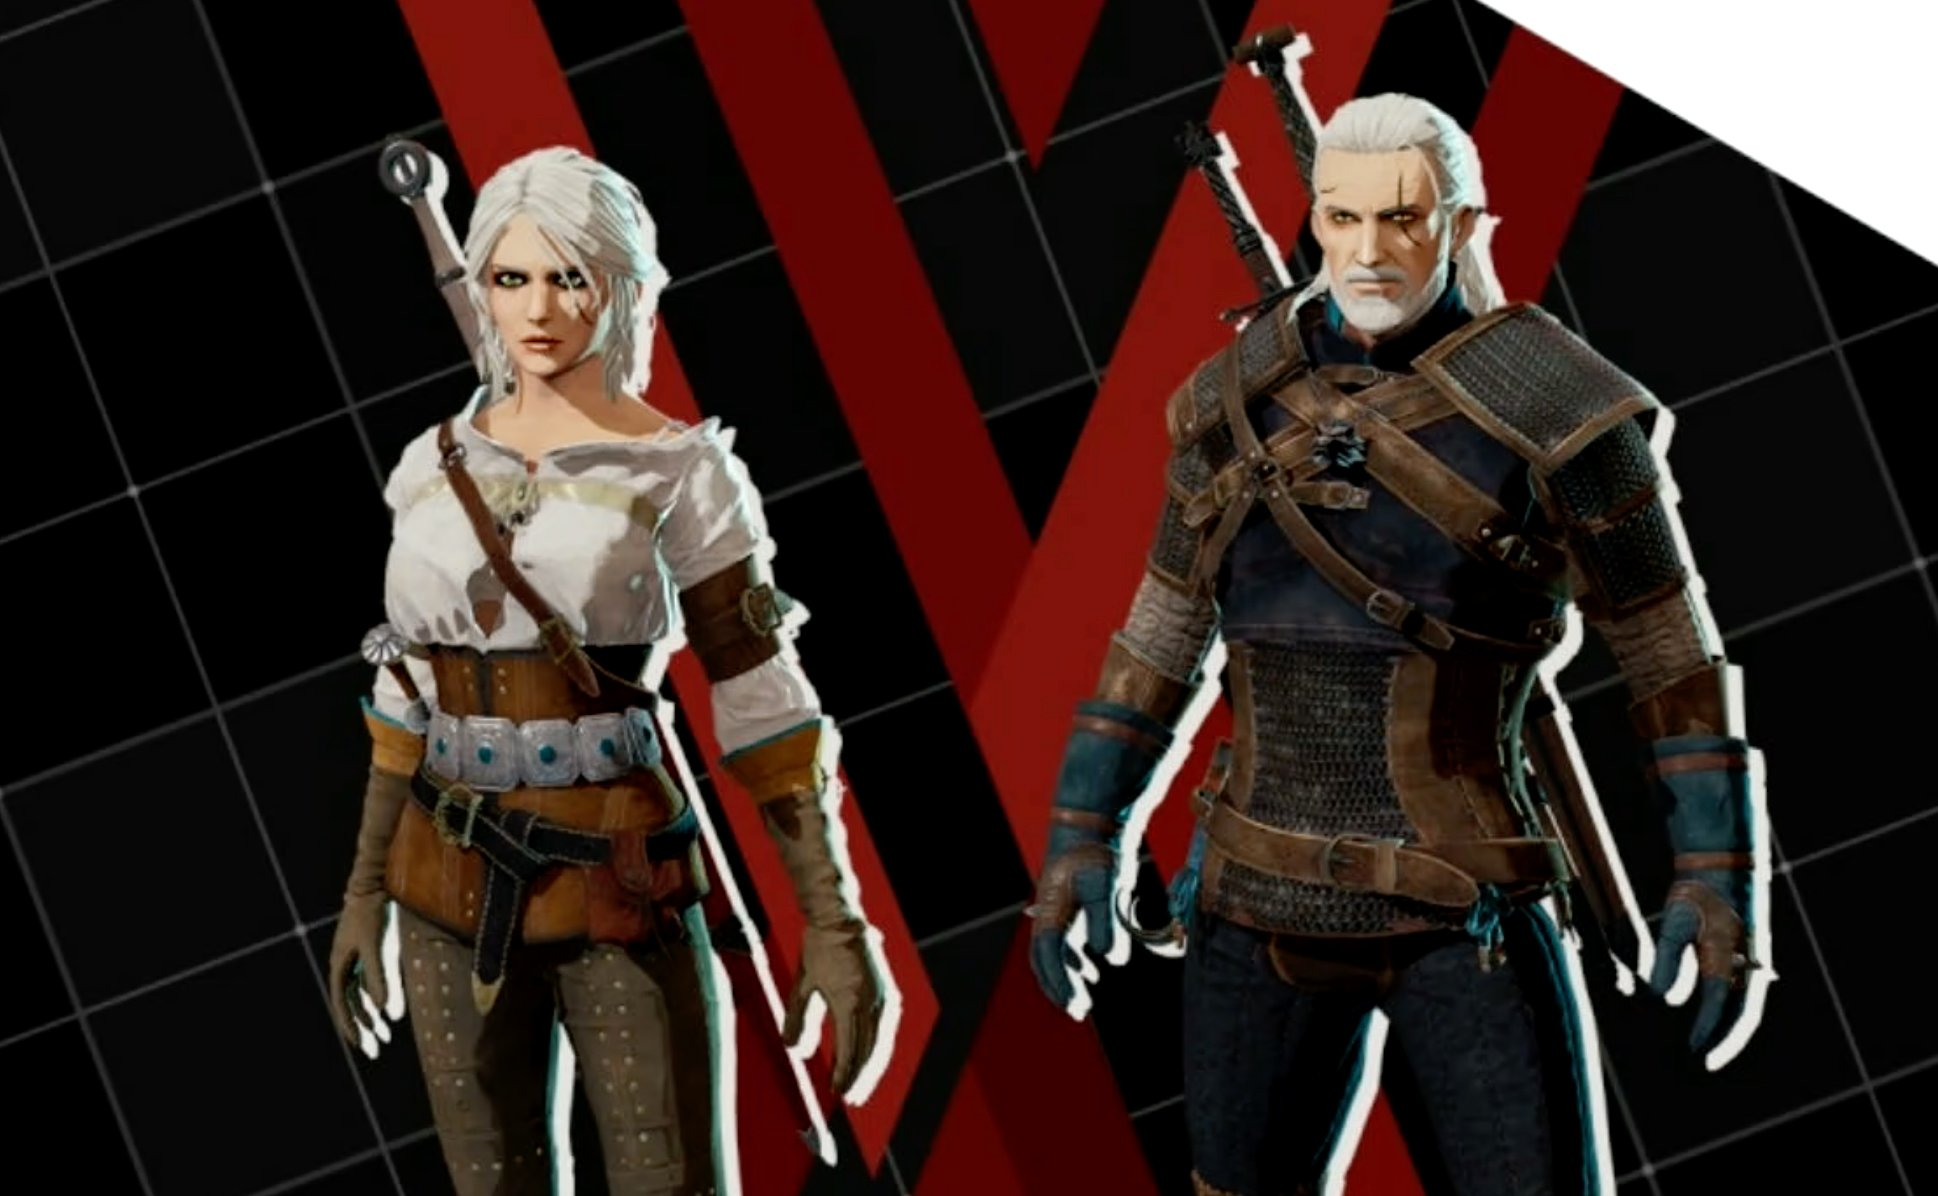 The free skins keep coming as Daemon X Machina adds Geralt and Ciri from The Witcher 3 screenshot